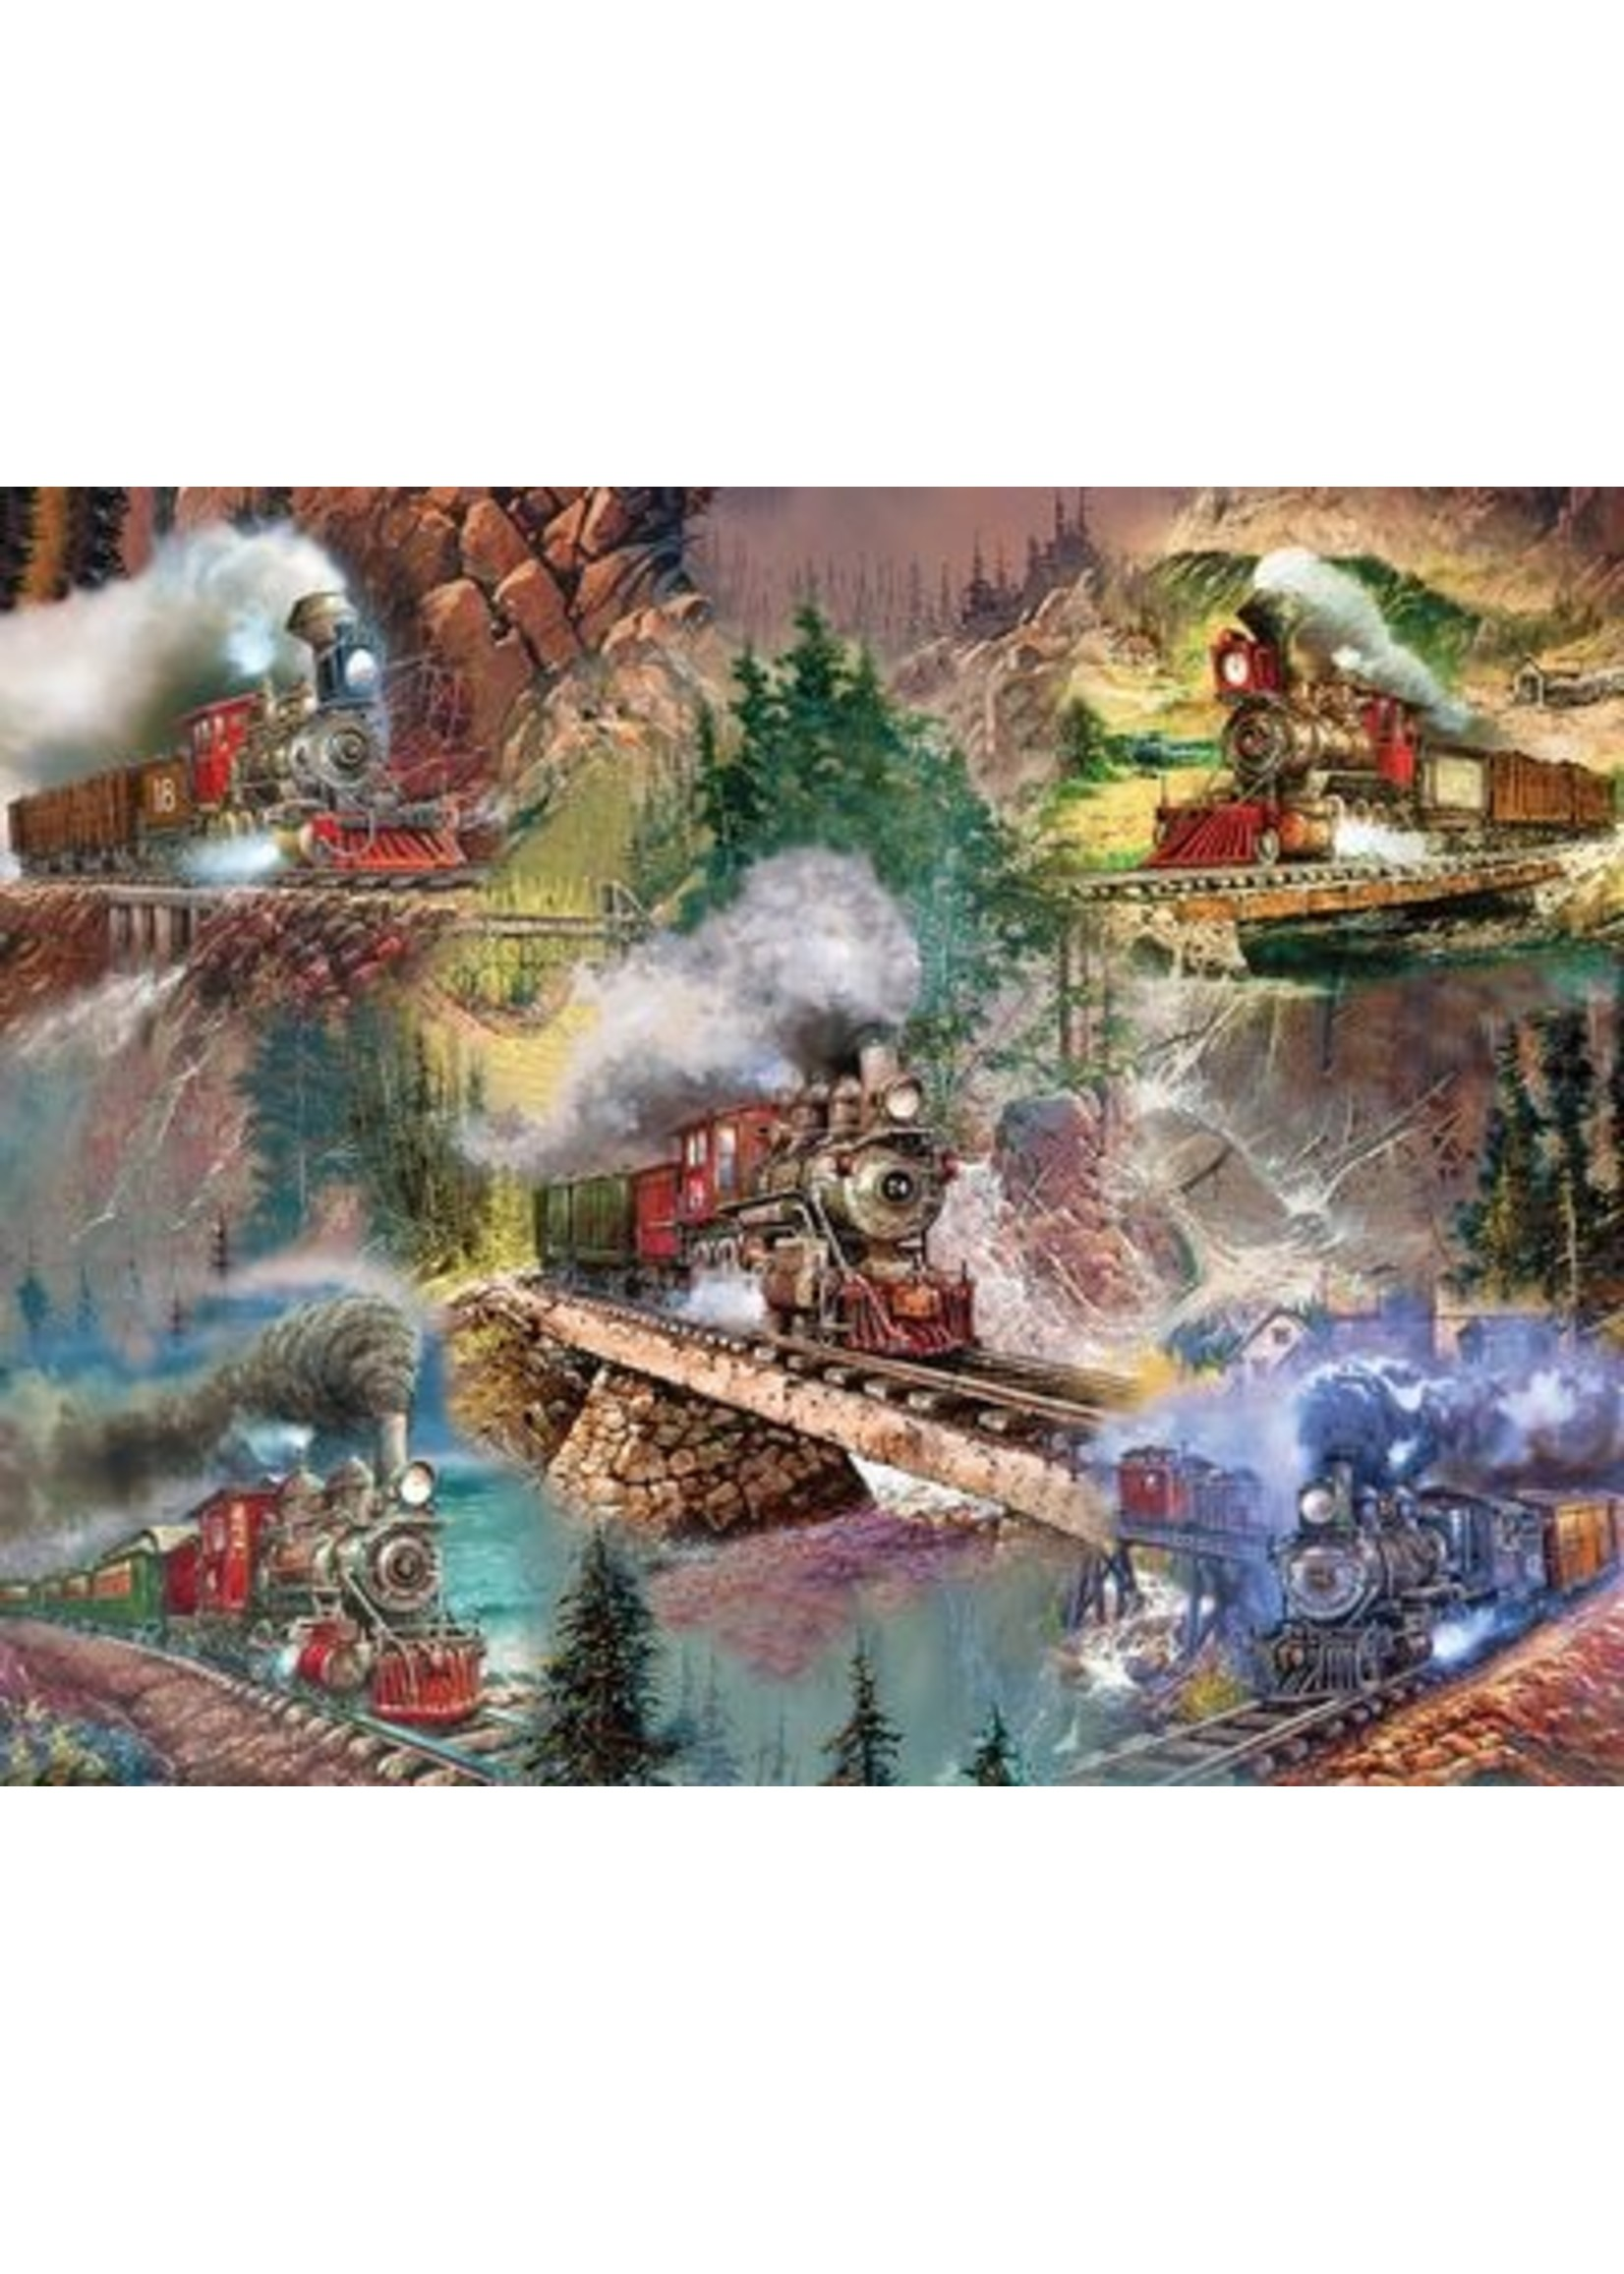 THRILLING TRAINS 1000 PIECE JIGSAW PUZZLE